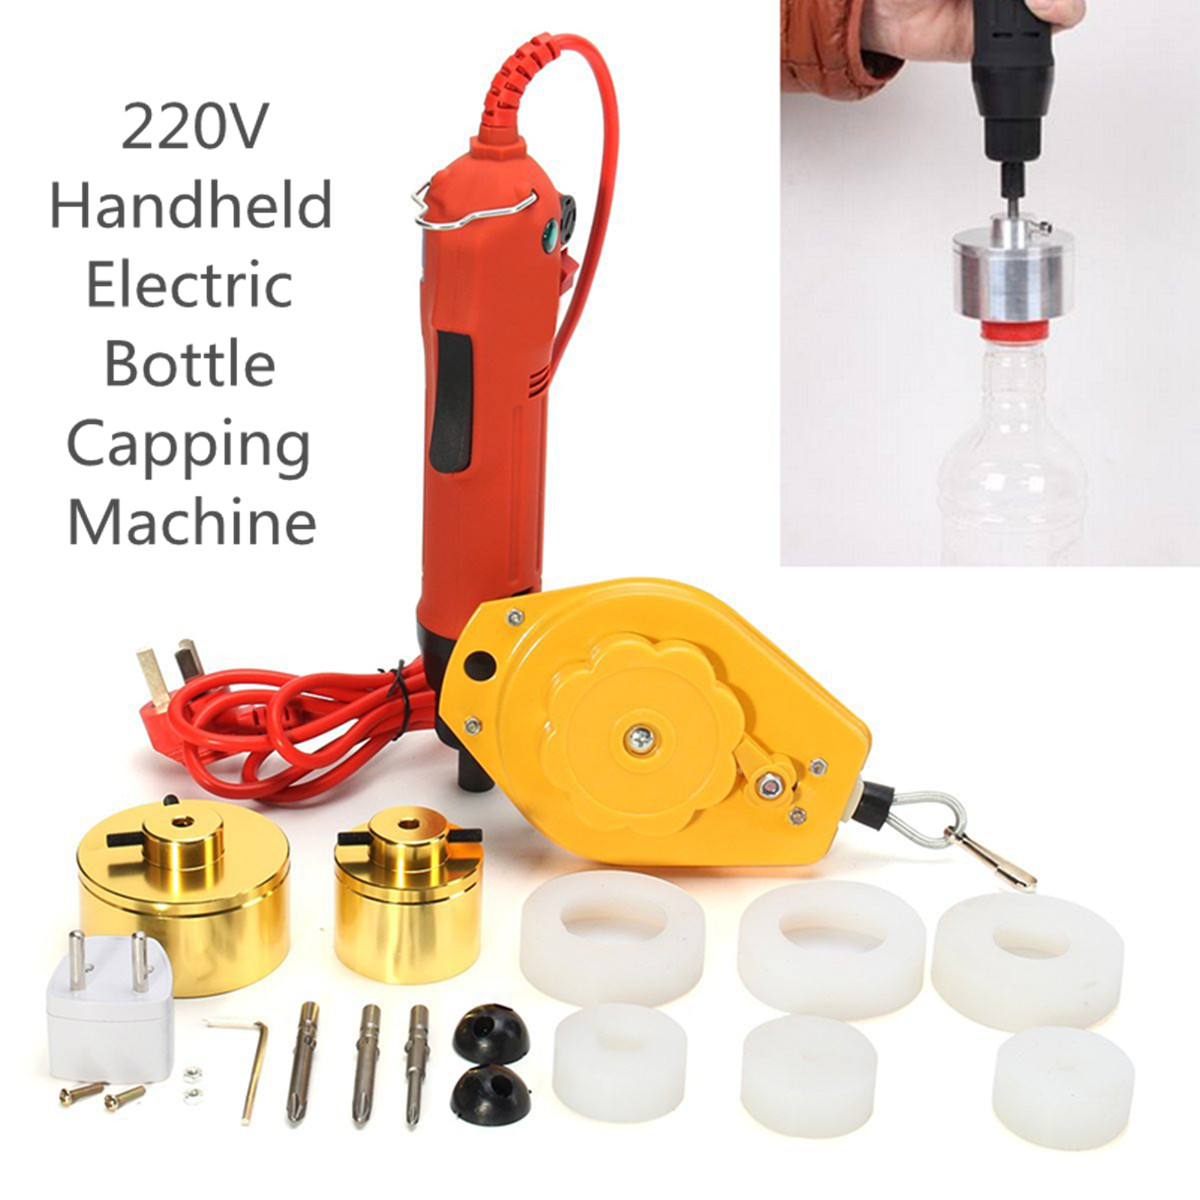 Portable Handheld Automatic Electric Bottle Capping Machine Cap Screwing Sealing Machine Bottle Capper With Spring Balancer 220V